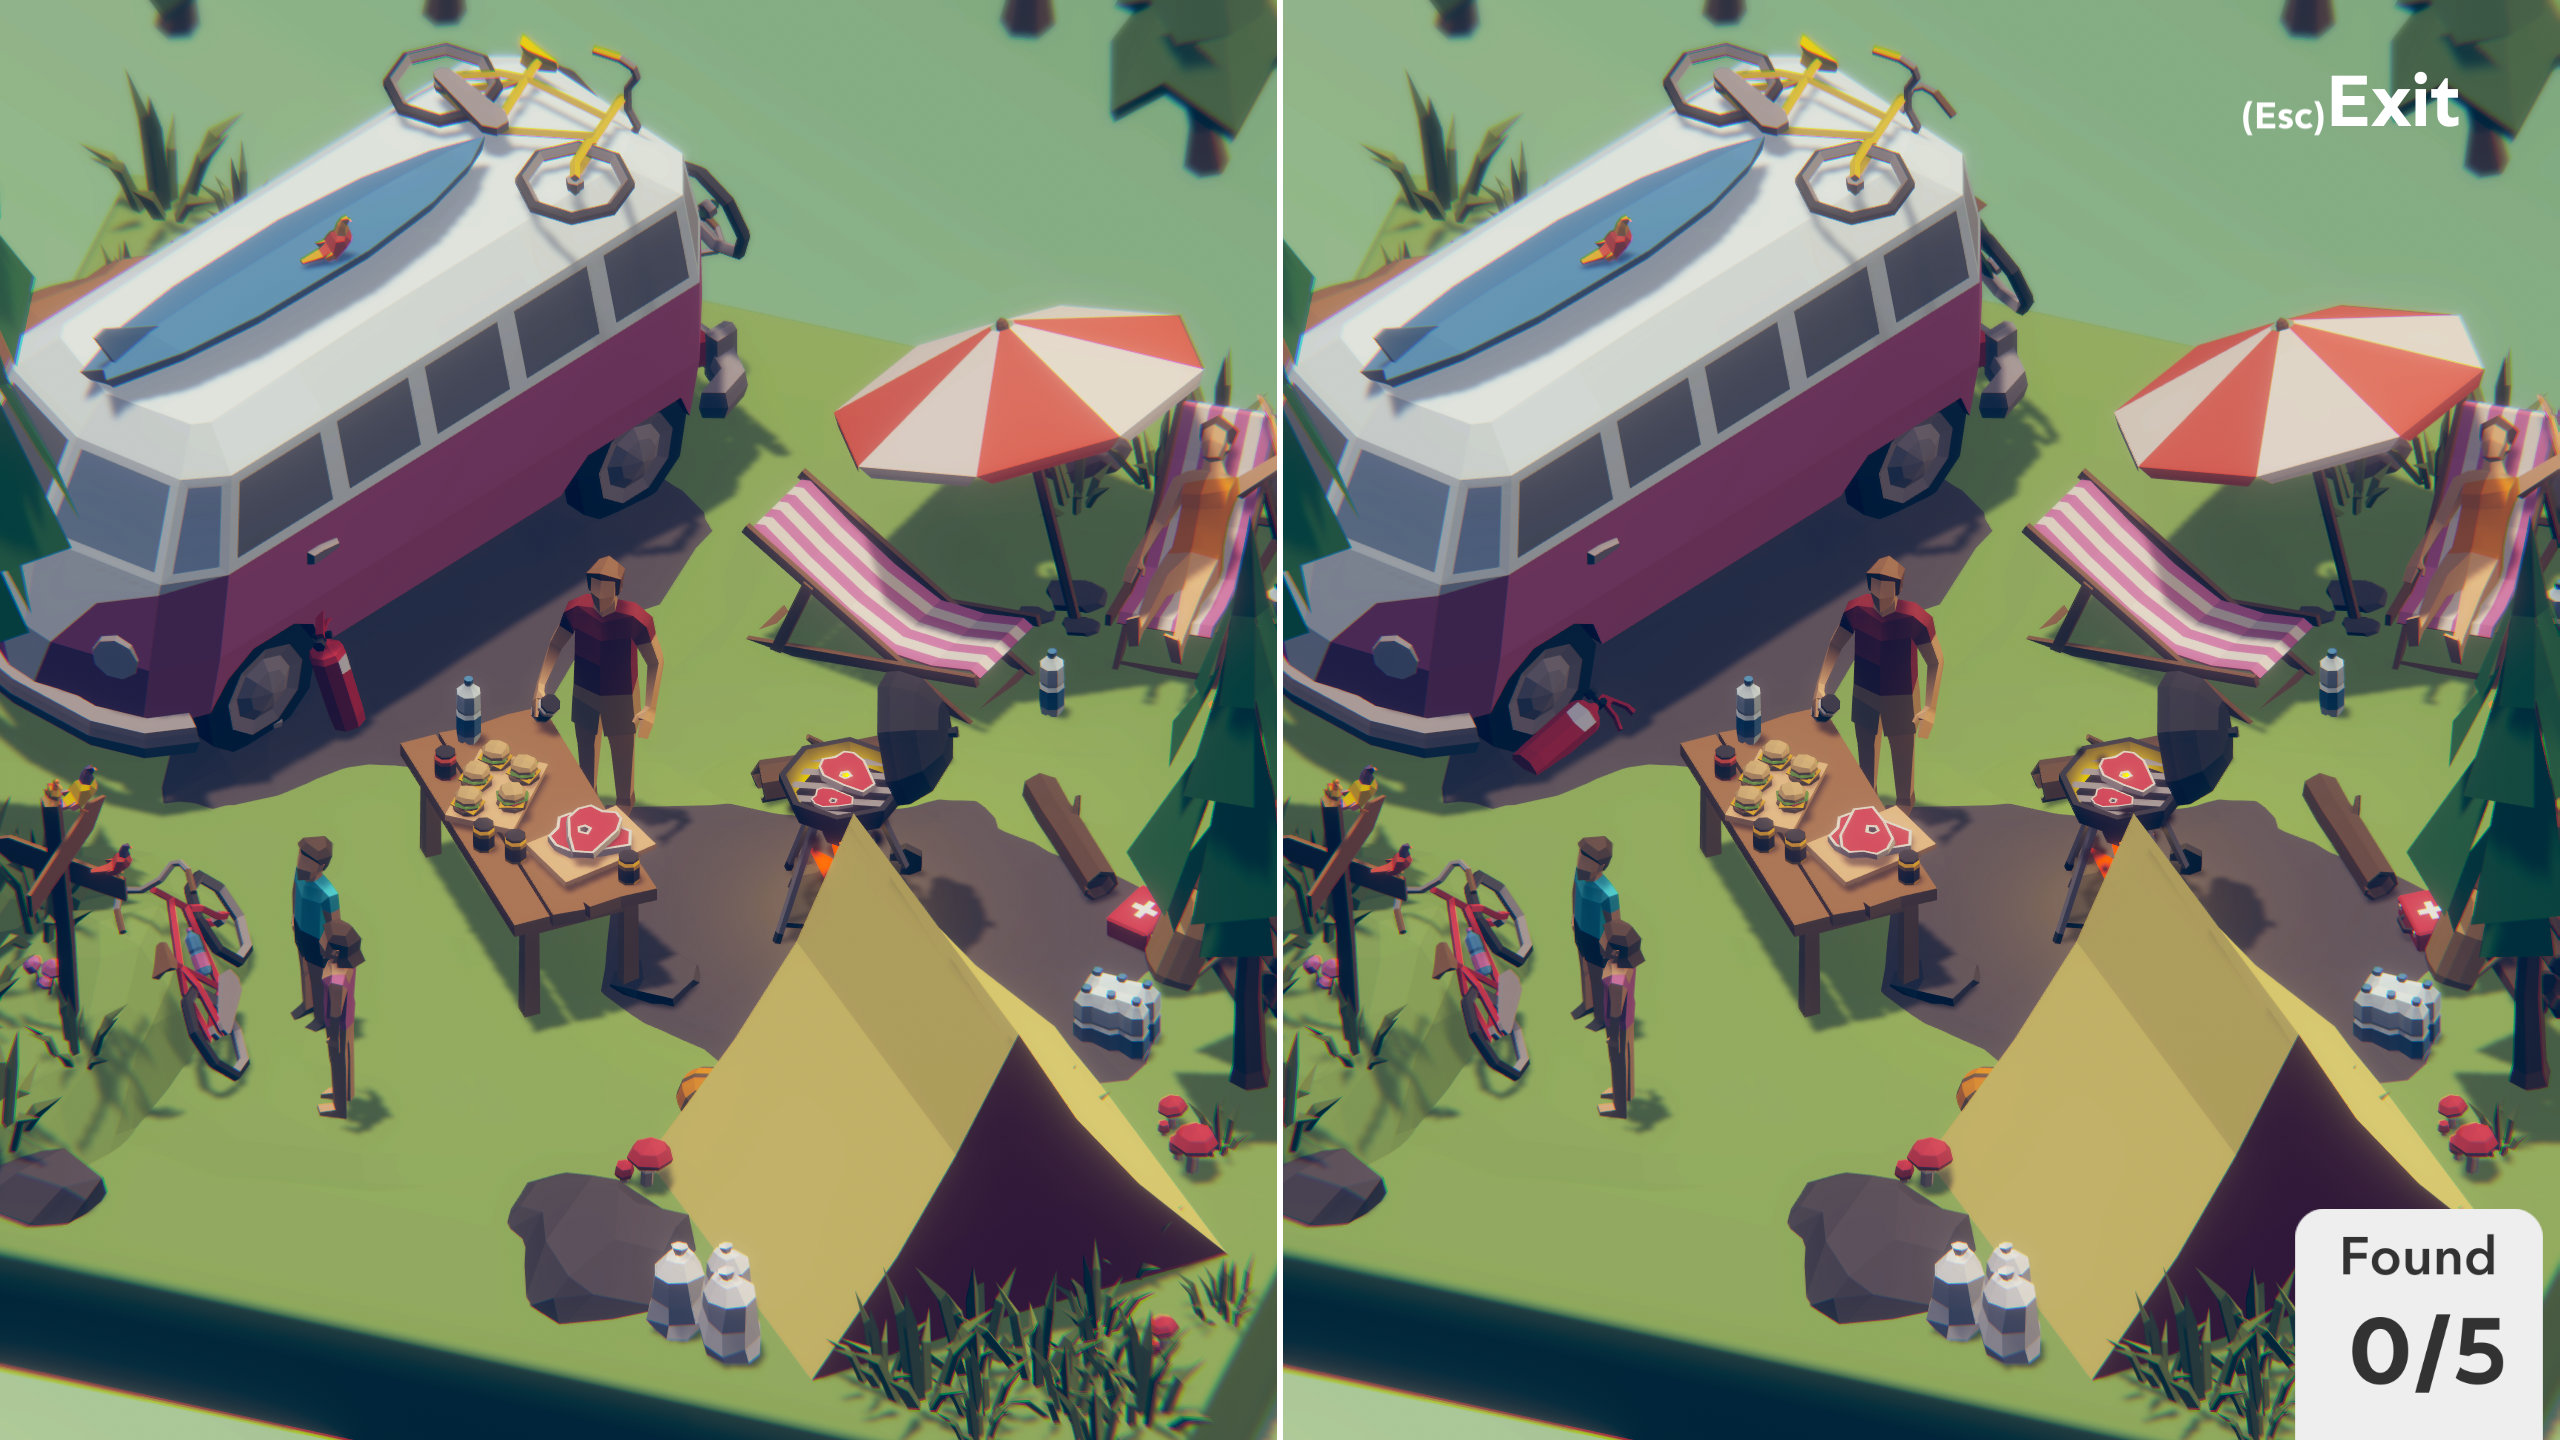 Two near-identical camping scenes side-by-side in a screenshot from Tiny Lands.